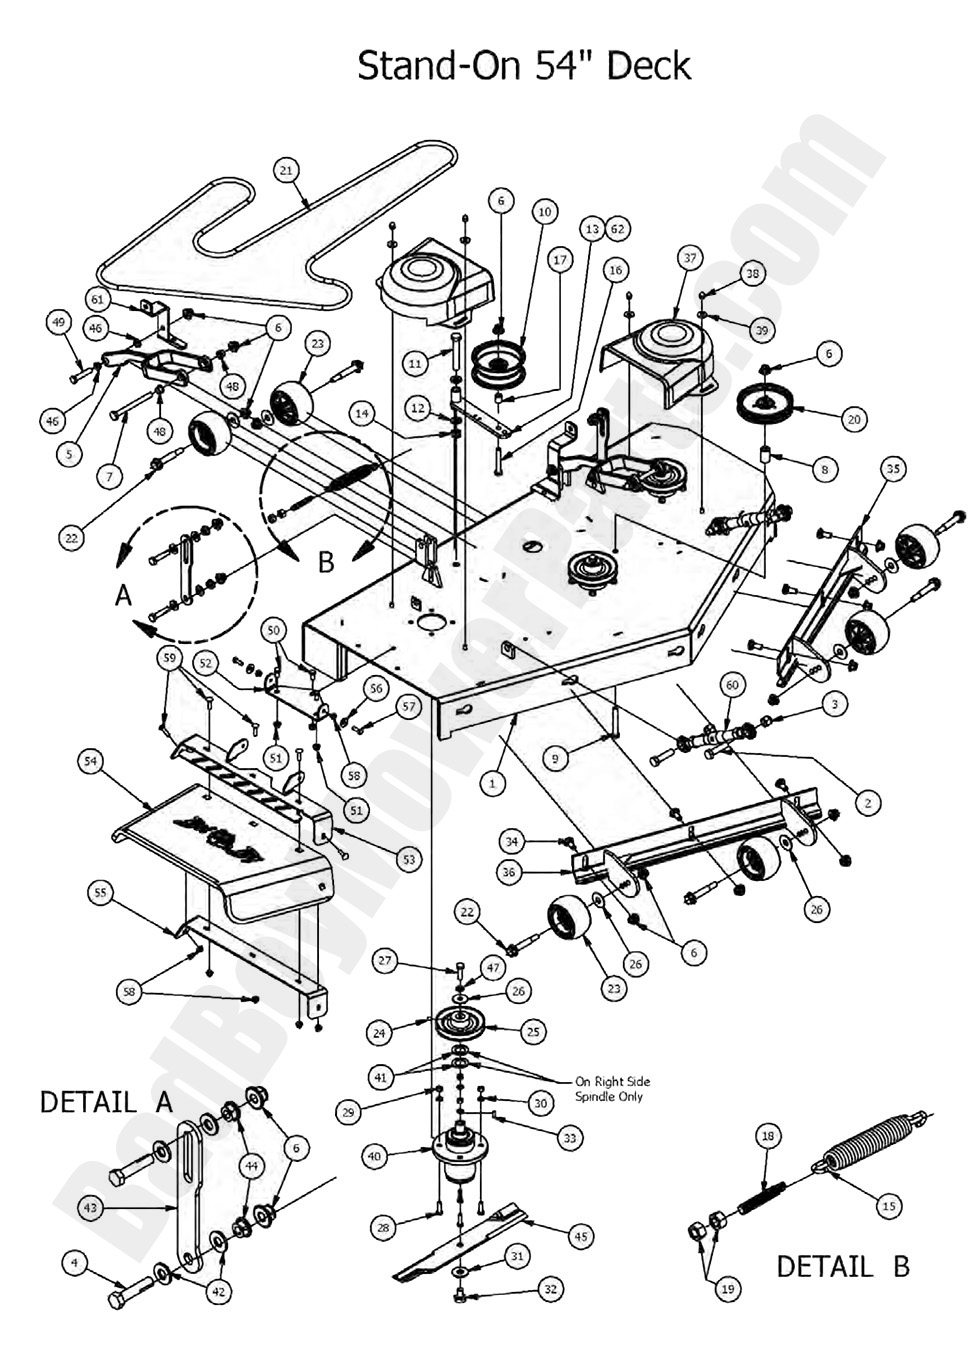 Bad Boy Mower Parts Lookup 2017 Outlaw Stand On 54